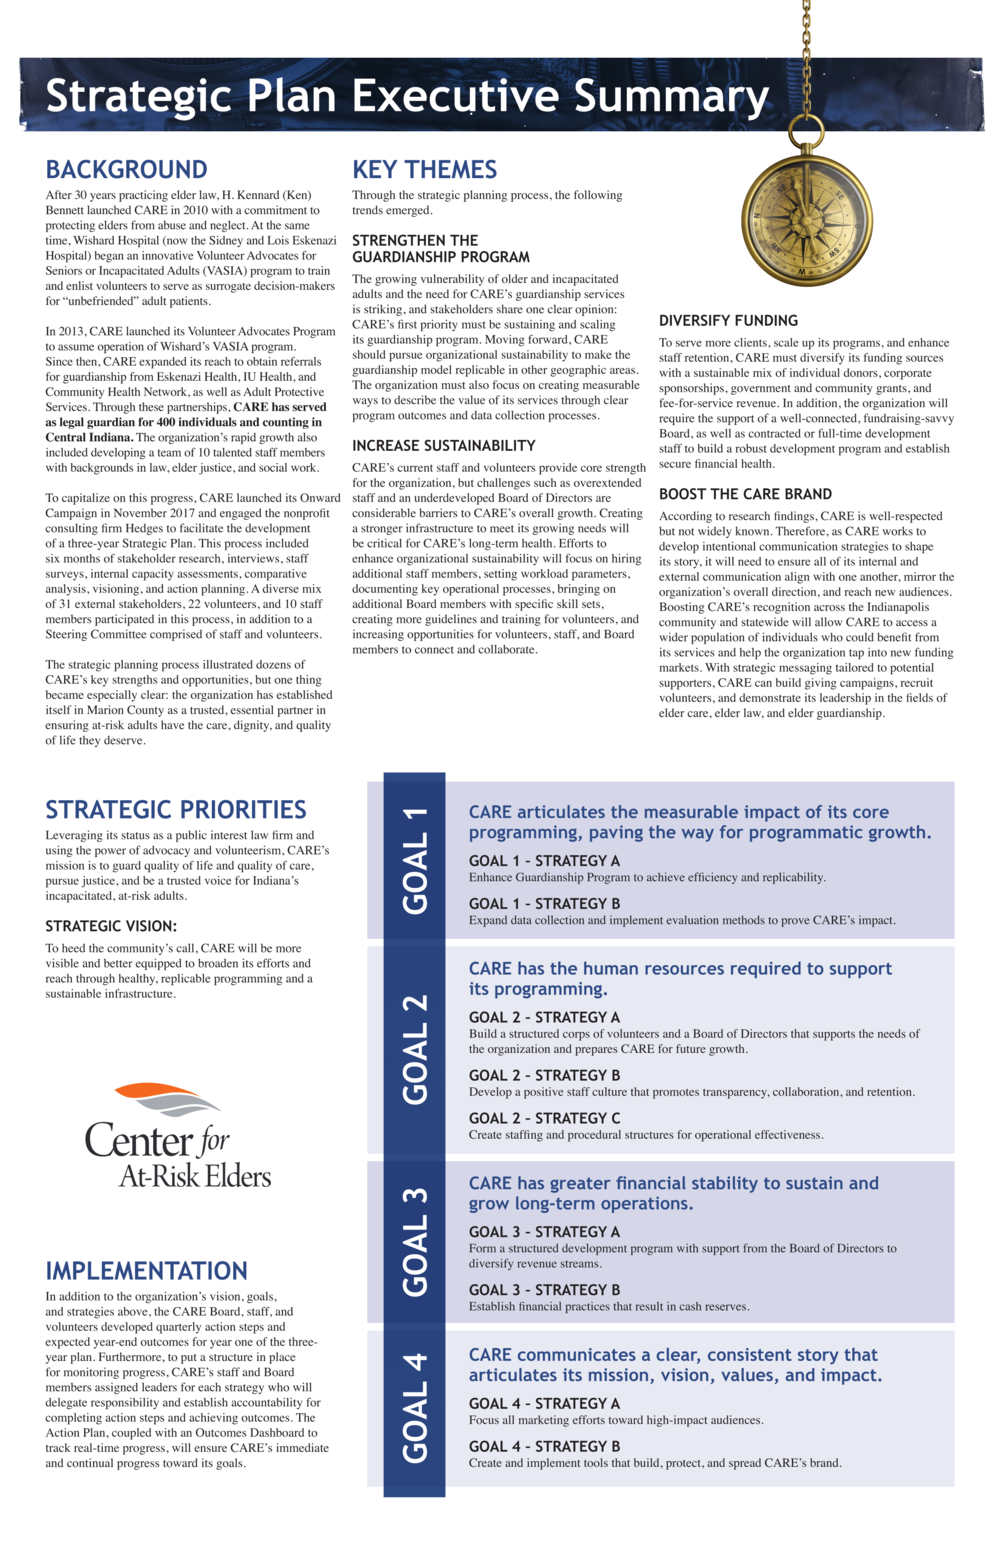 CARE 2019-2021 Strategic Plan Executive Summary High-Res_Print - Copy (1)-1.png